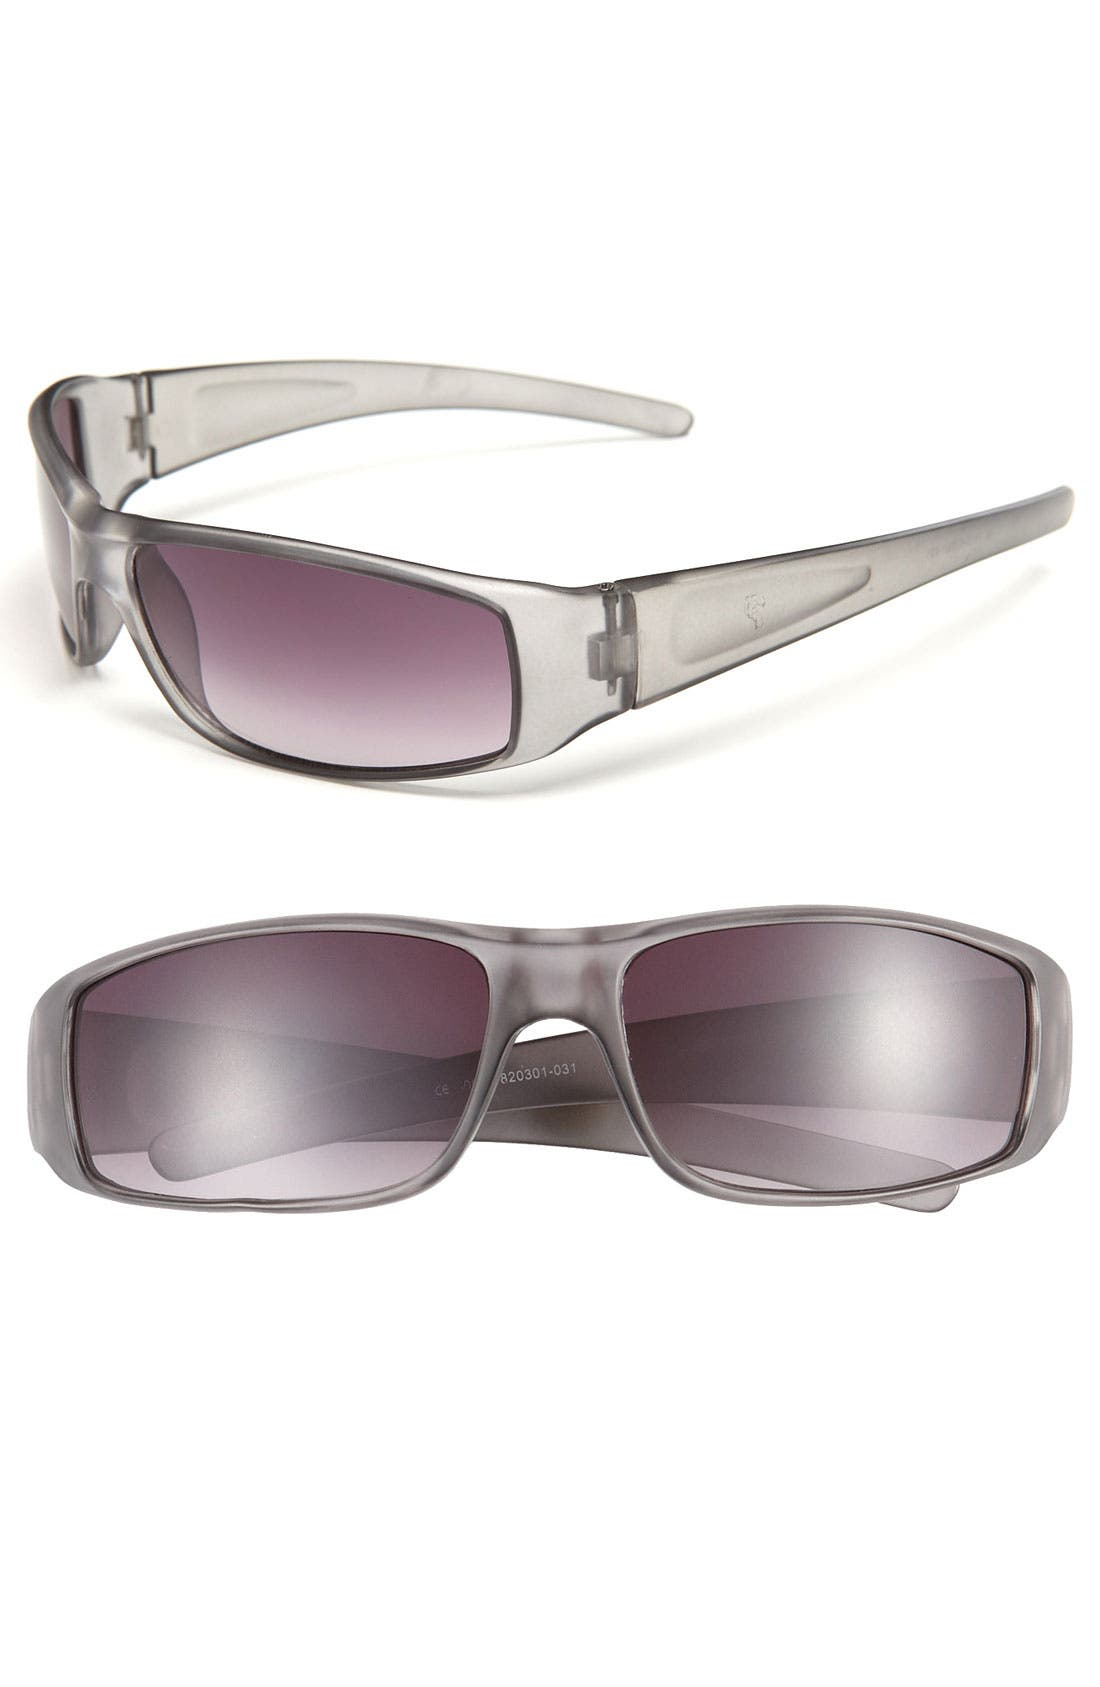 Main Image - Icon Eyewear 'Crosby' Sunglasses (Big Boys)